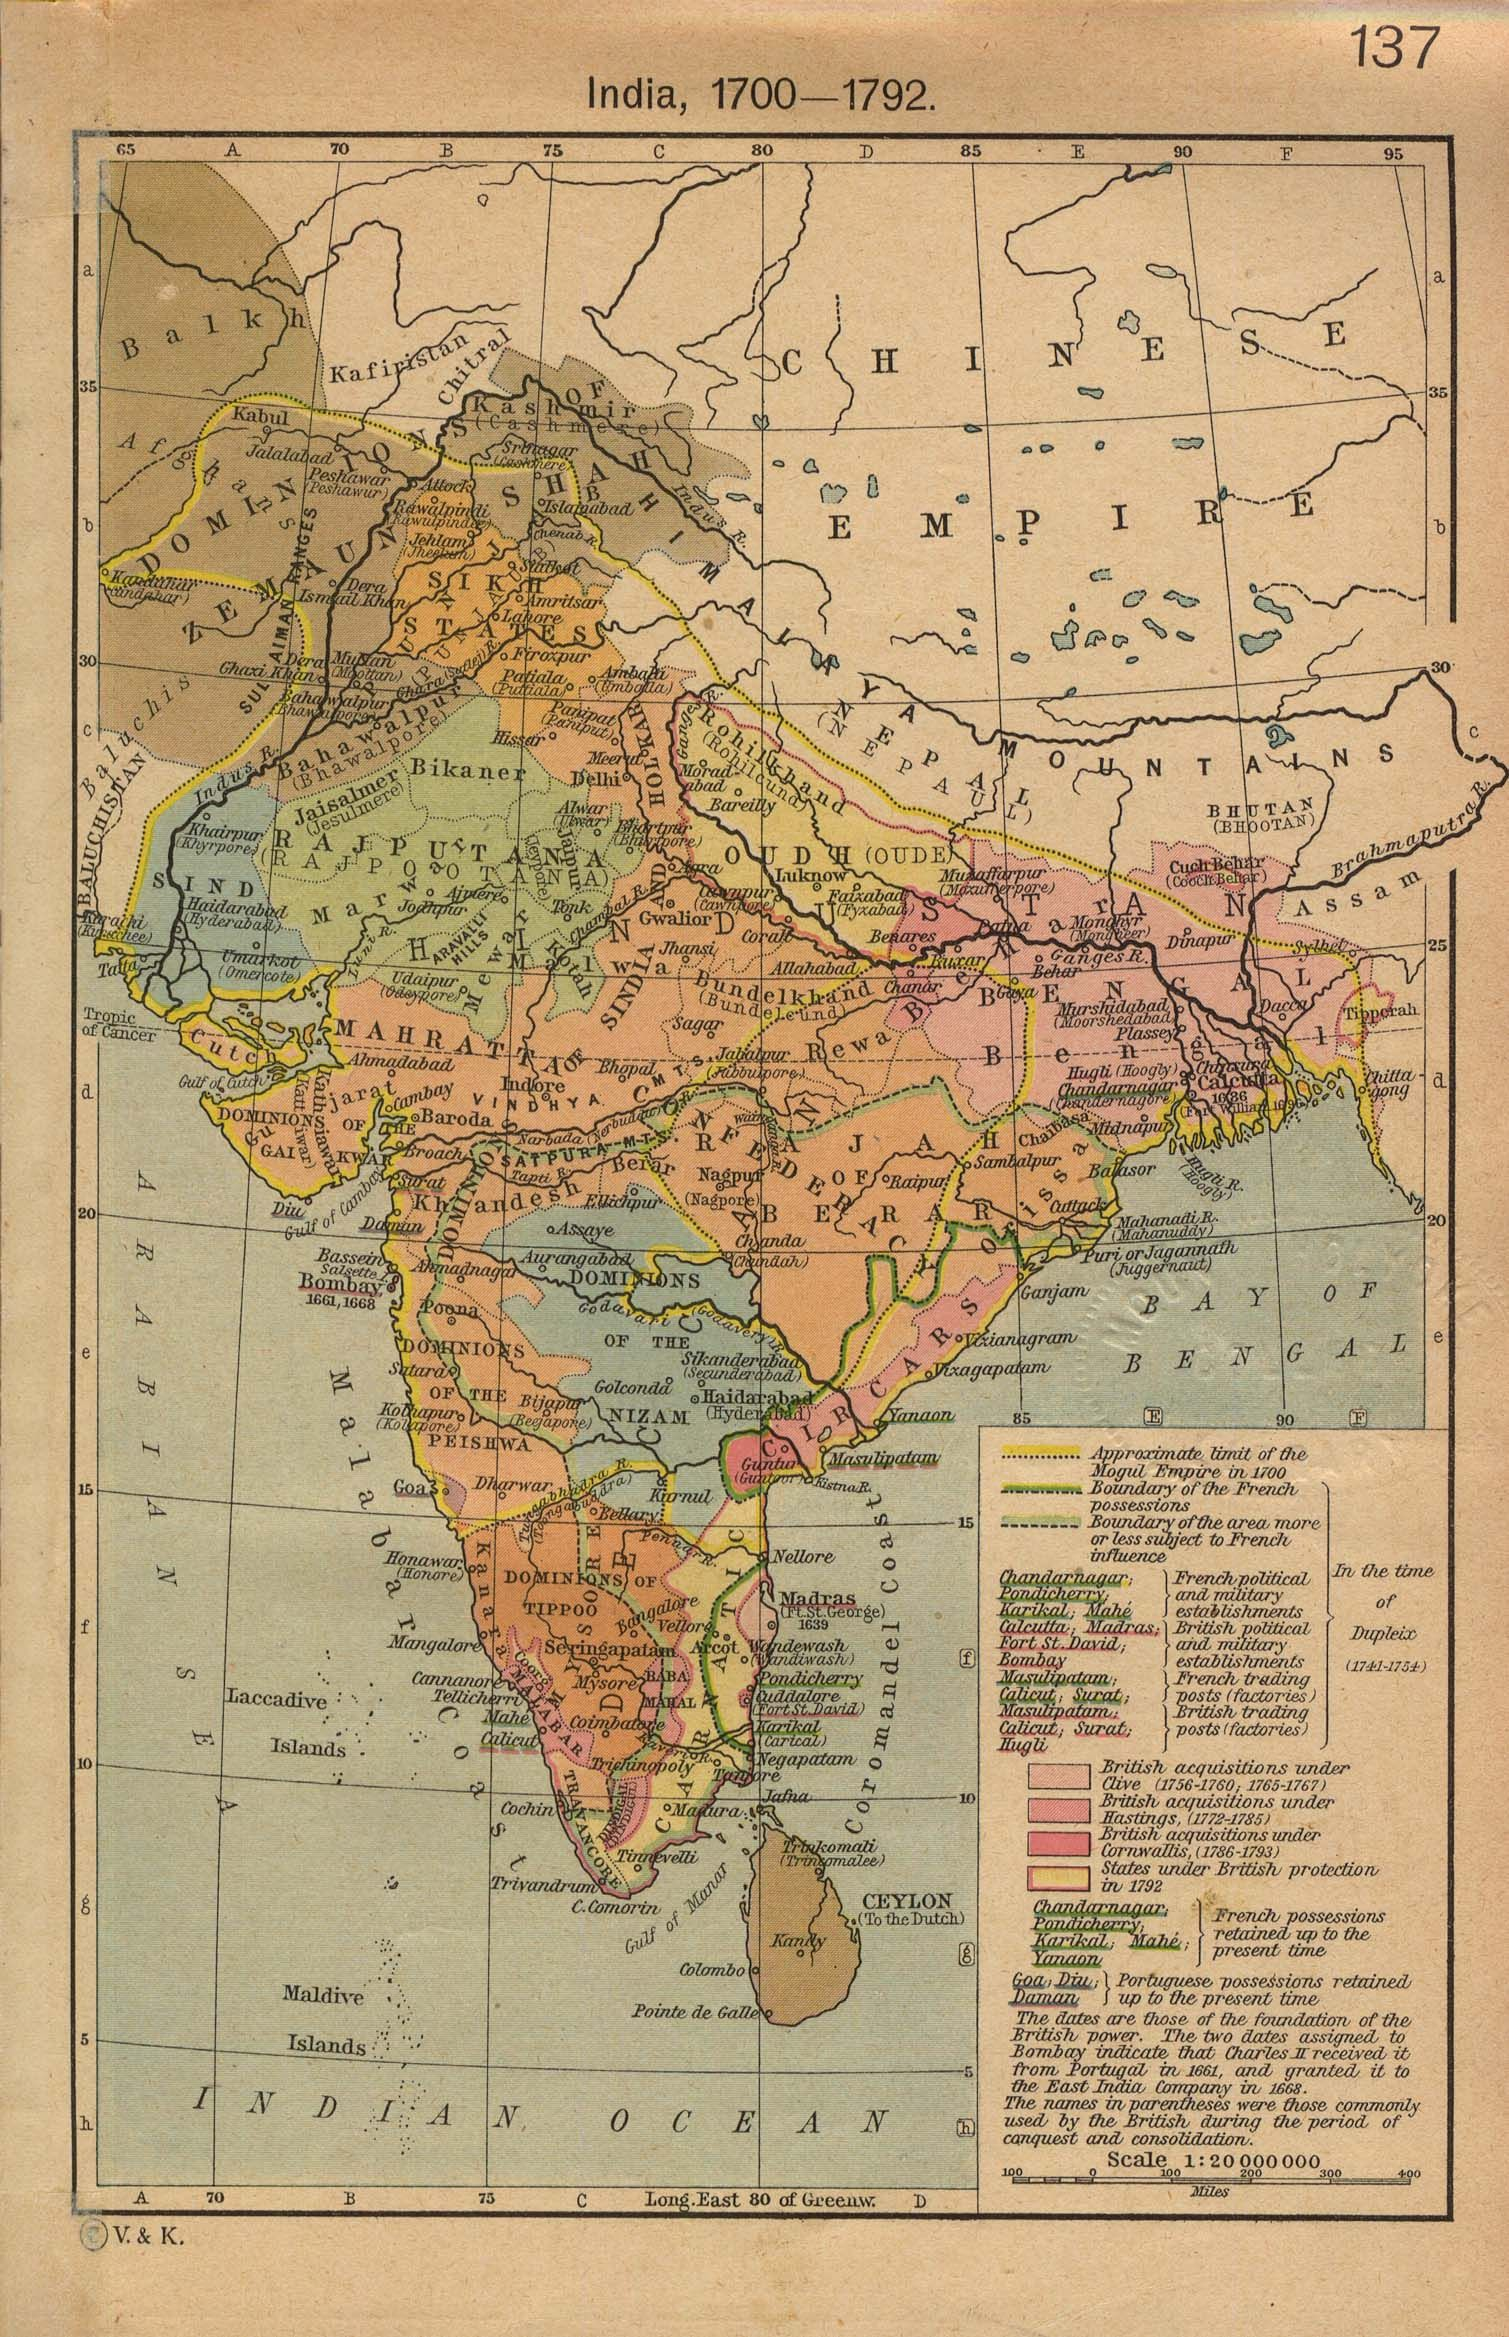 18th century india map india mappery upsc prep pinterest 18th century india map india mappery gumiabroncs Gallery